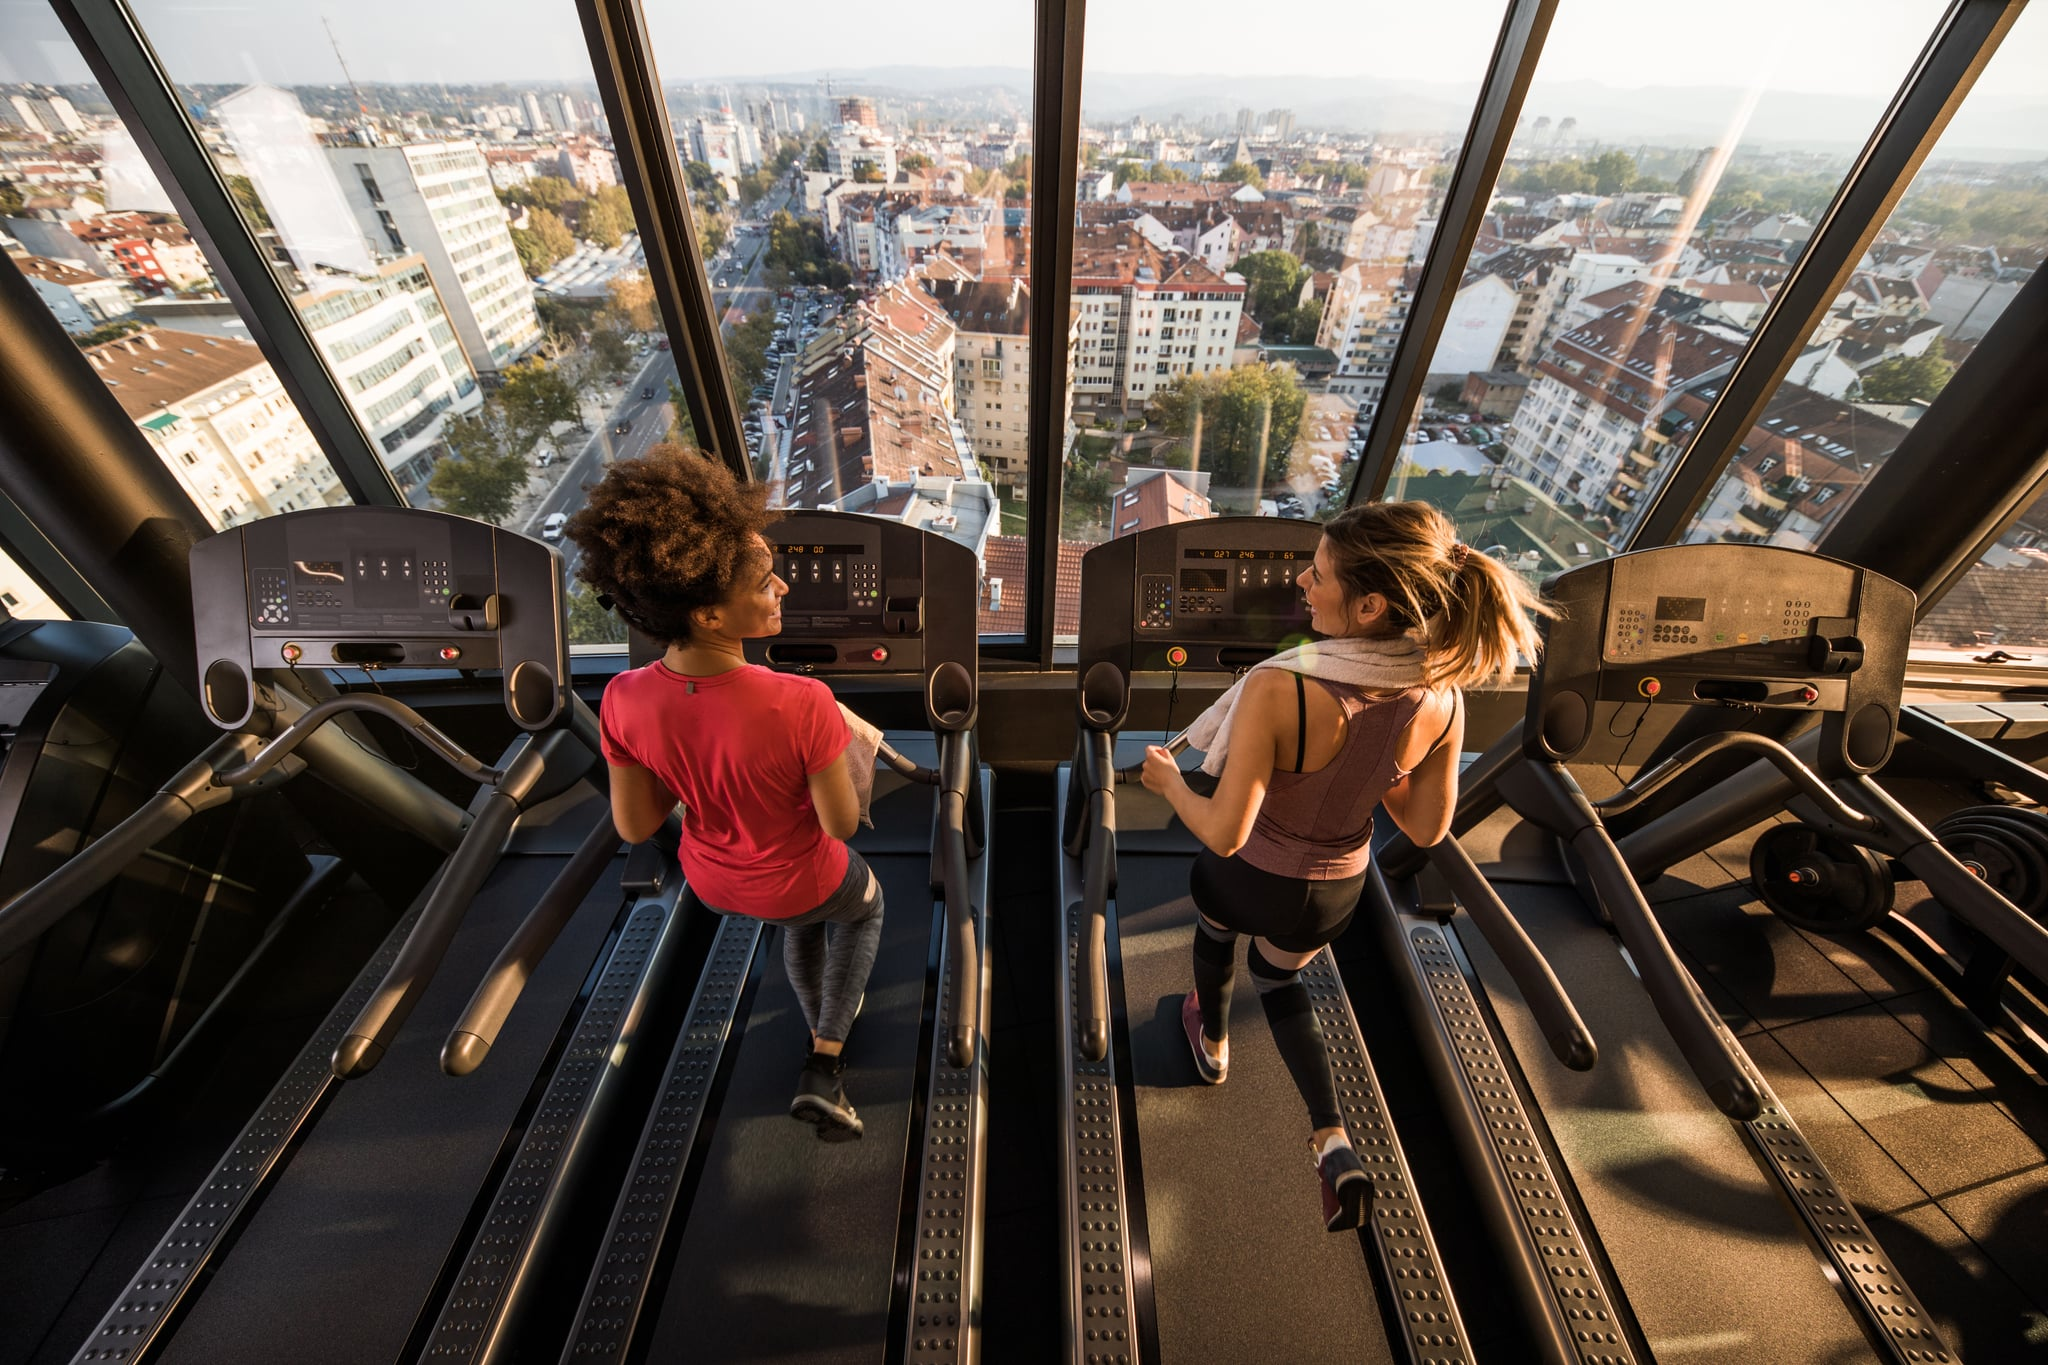 High angle view of two female athletes talking while warming up and jogging on treadmill.